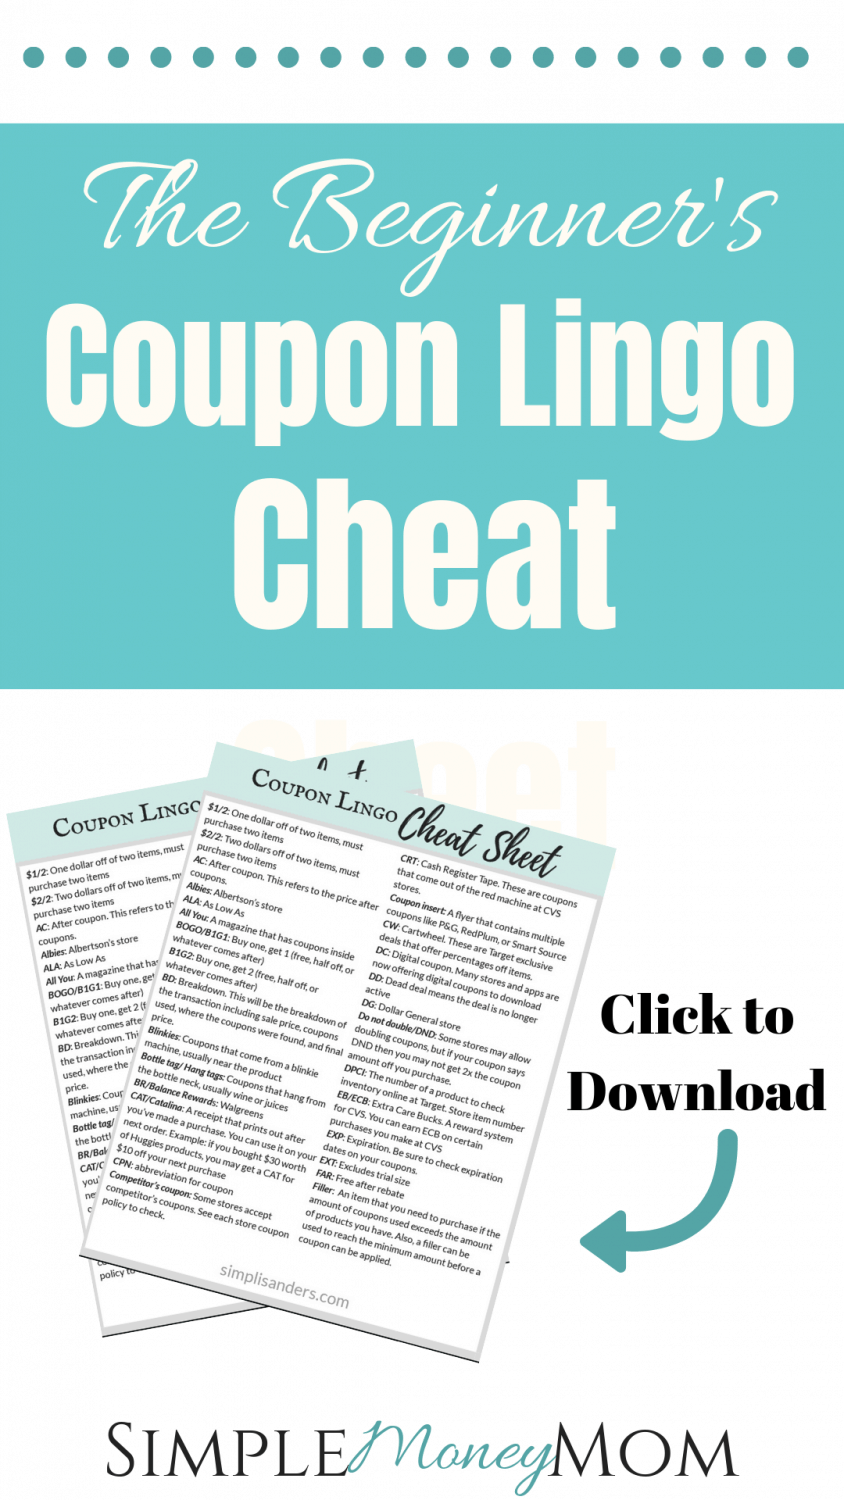 This is your one stop shop for learning all of the coupon terms. If you want to be successful with using coupons and saving a ton of money, then you'll need to first understand the lingo. There is also a free download for you! #savingmoney #coupons #couponing101 #moneytips #printable #simplemoneymom